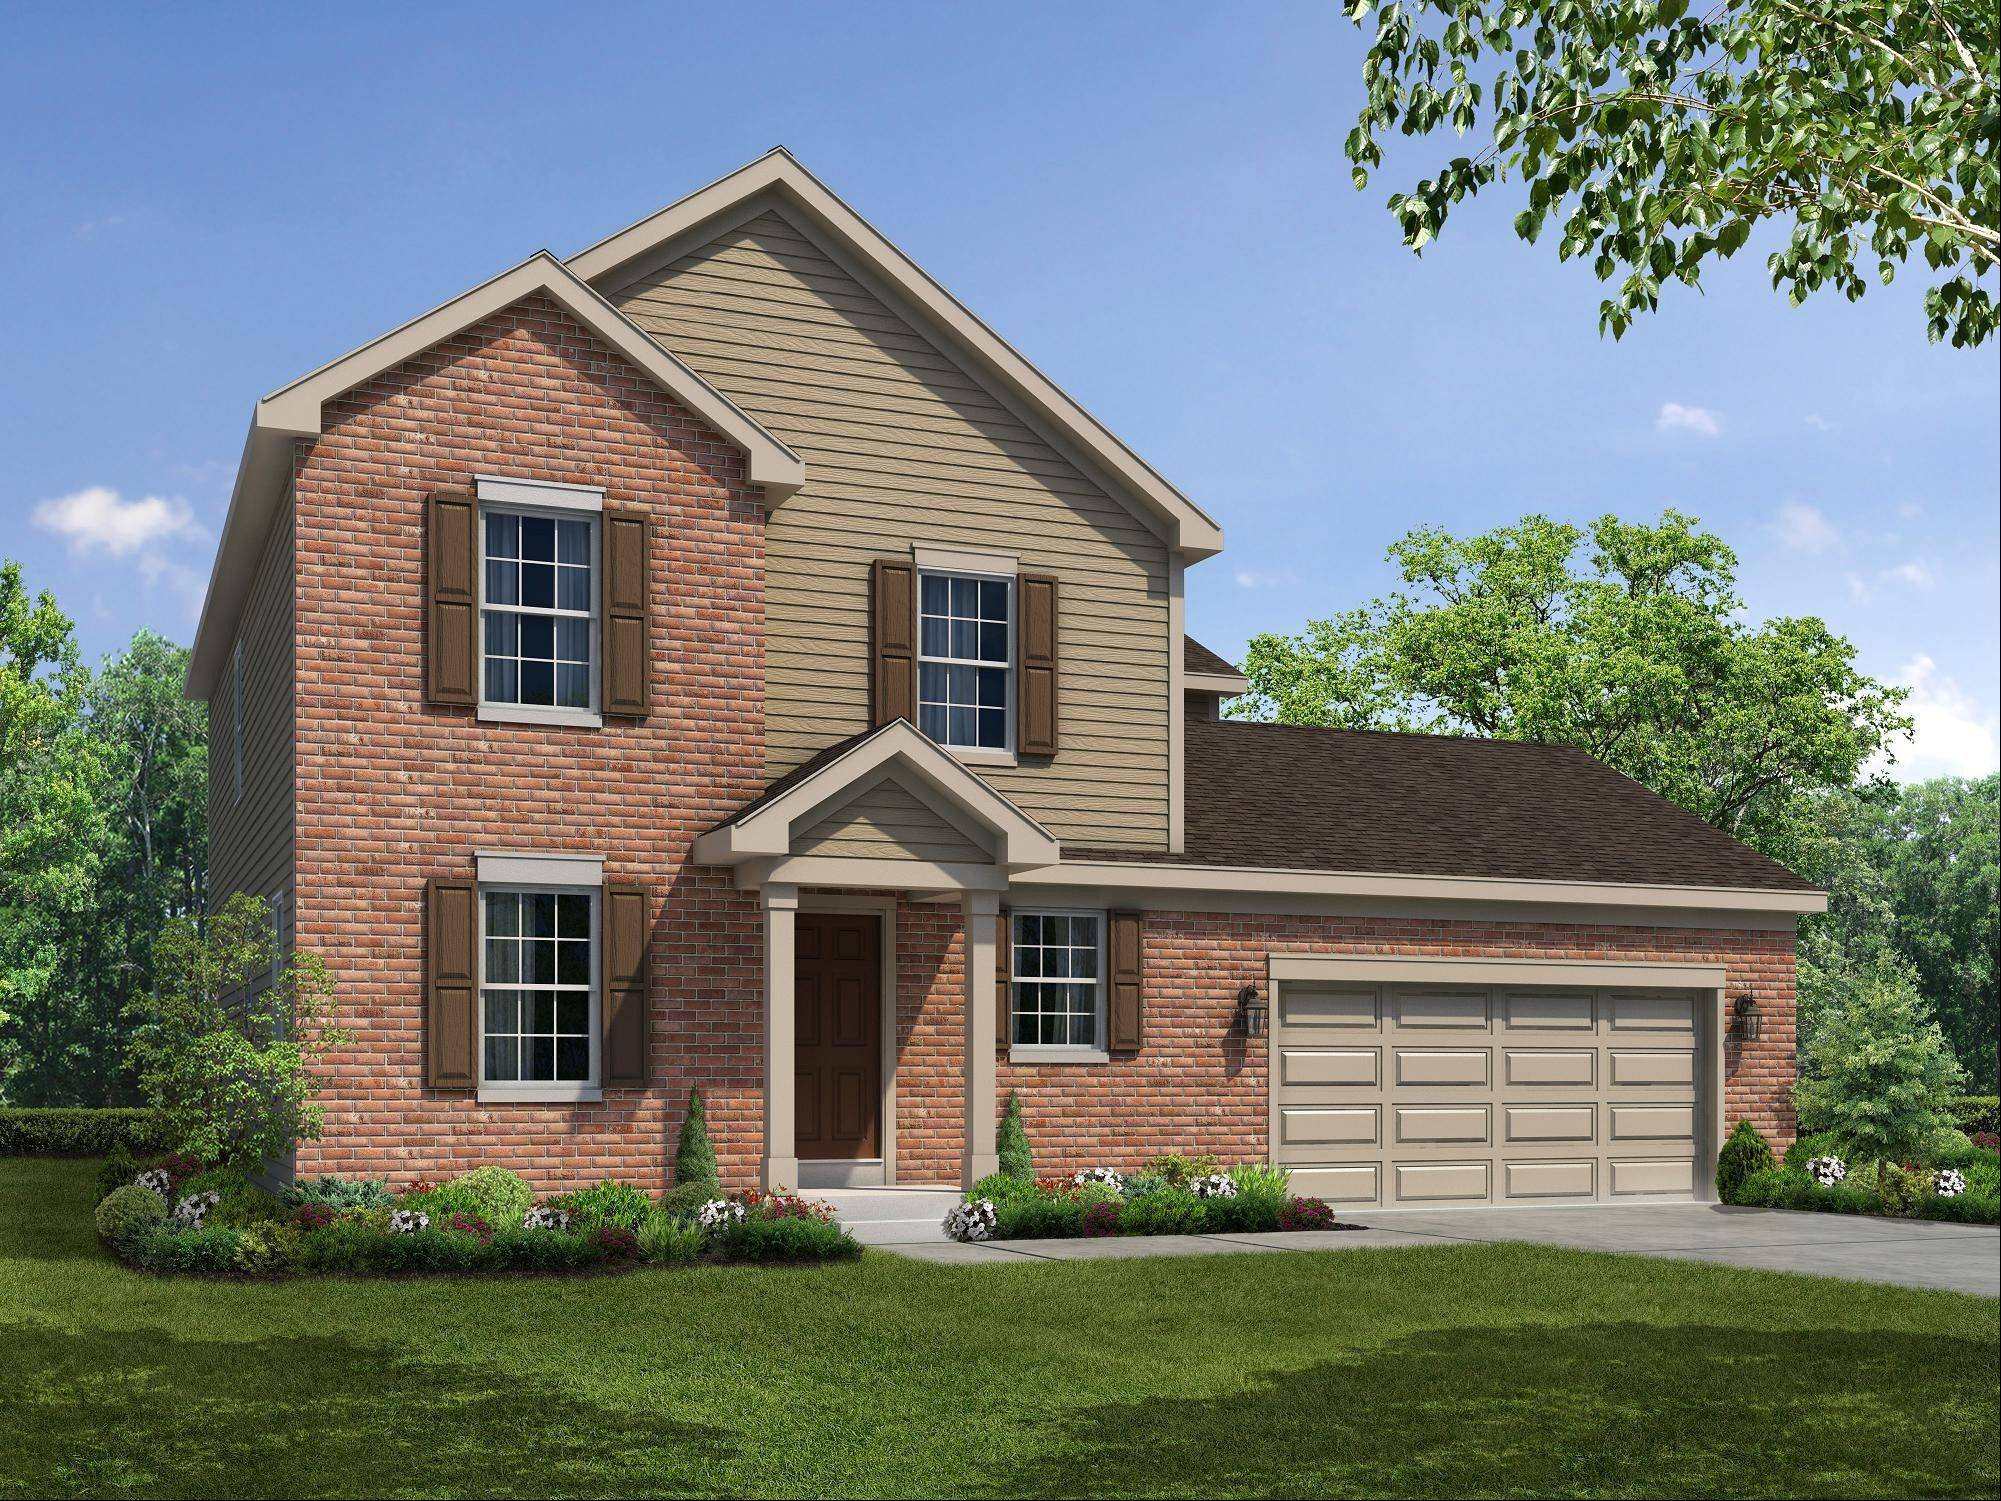 William Ryan Homes, which offers this Fordham model, is about to open three new communities in Barrington, Algonquin and Plainfield.